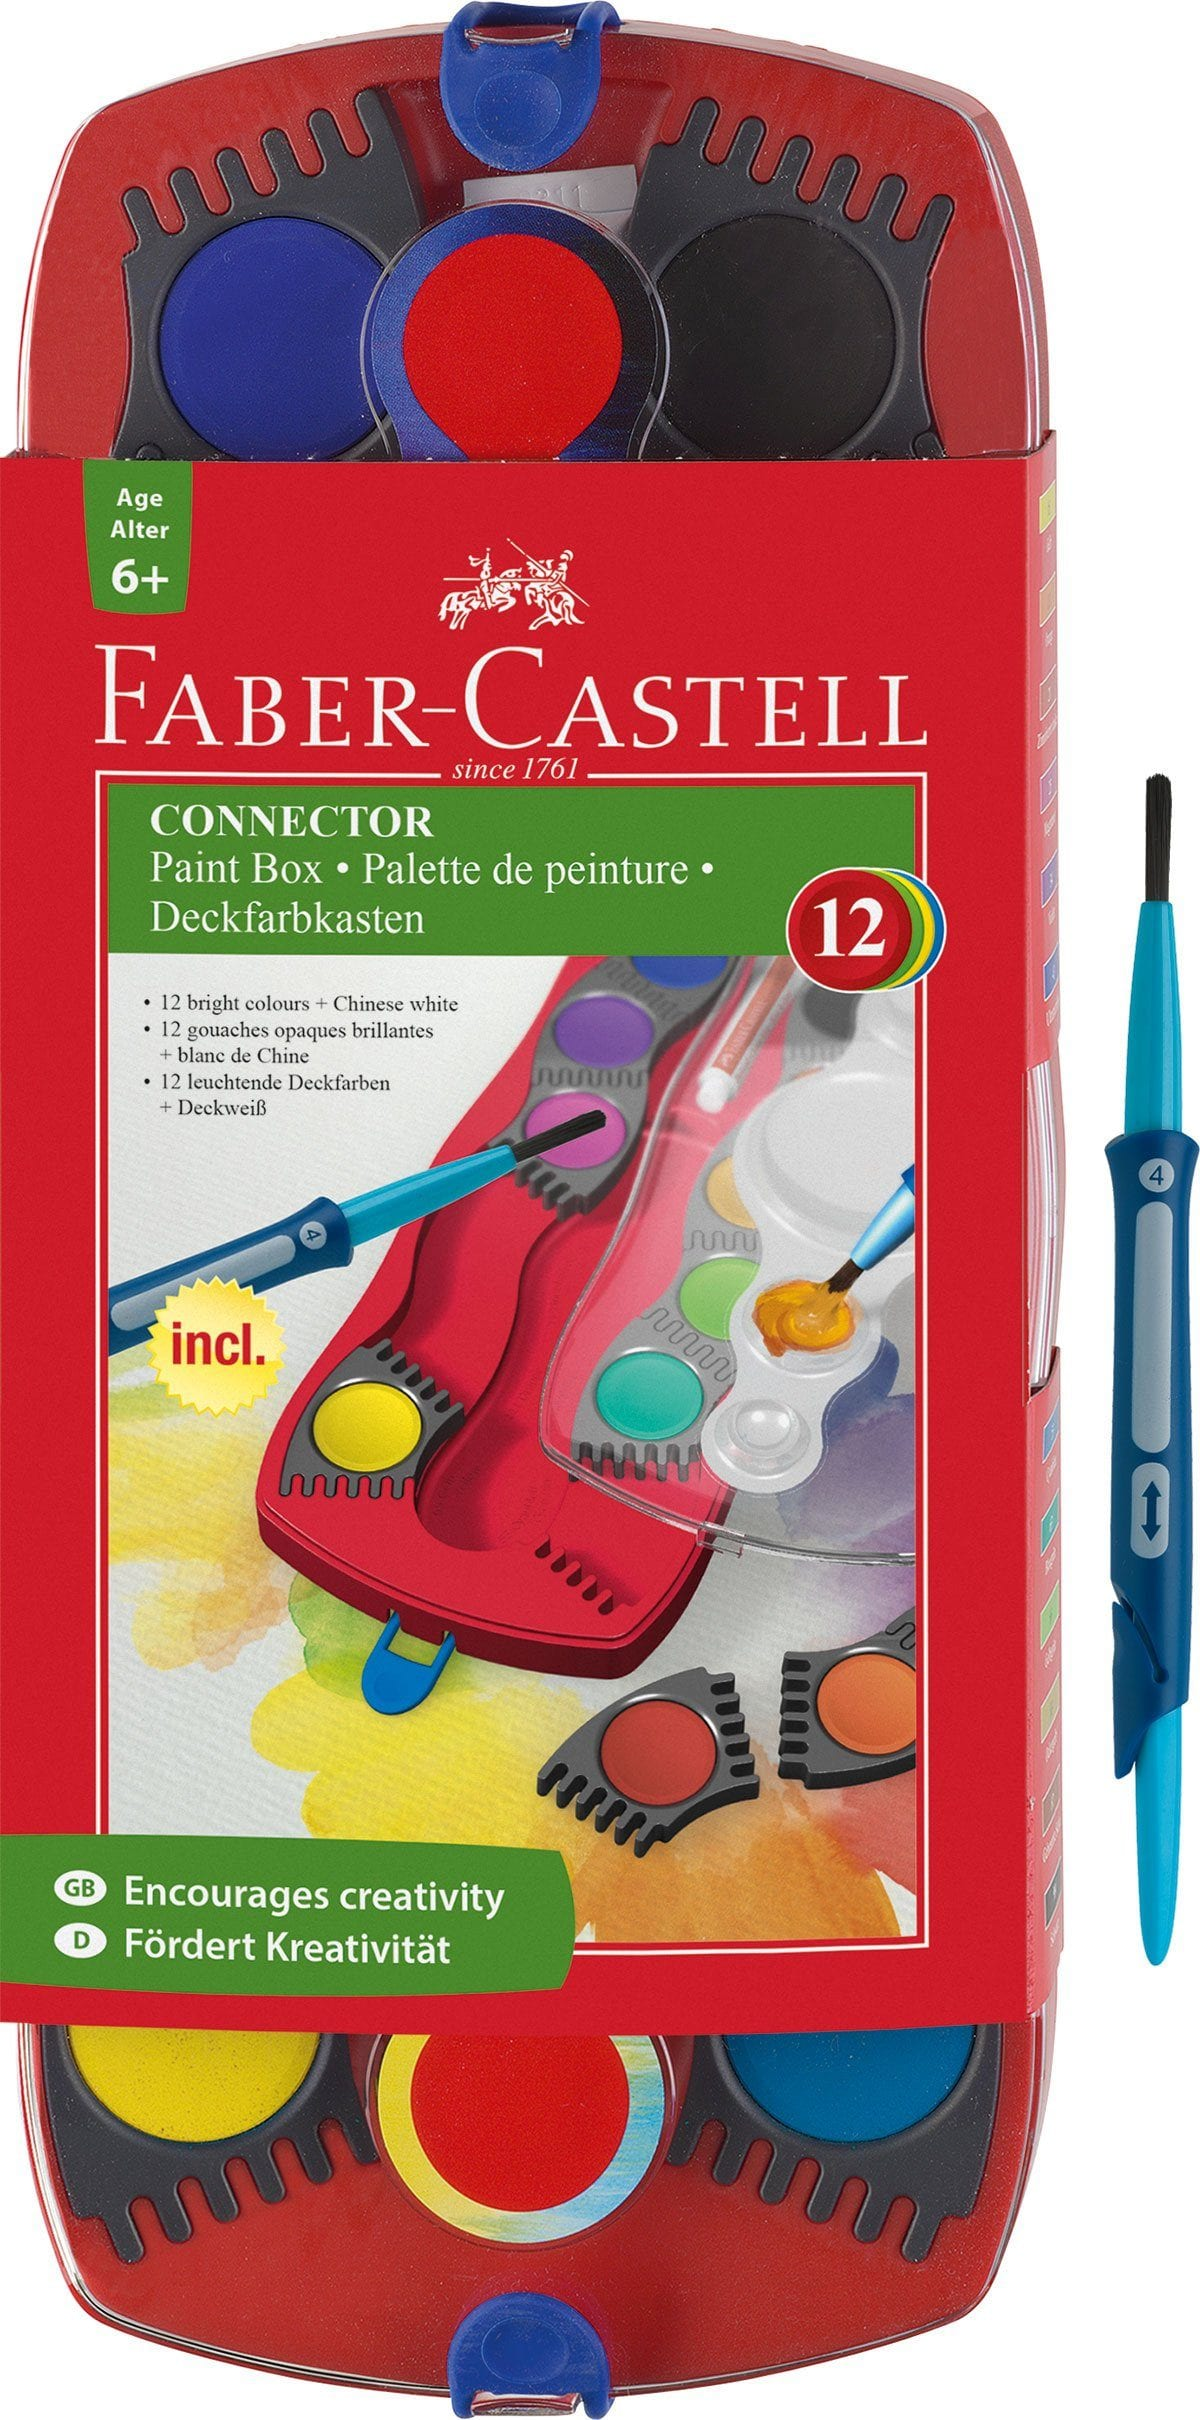 Faber Castell Connector Paint Box - 12 Colours - huggle